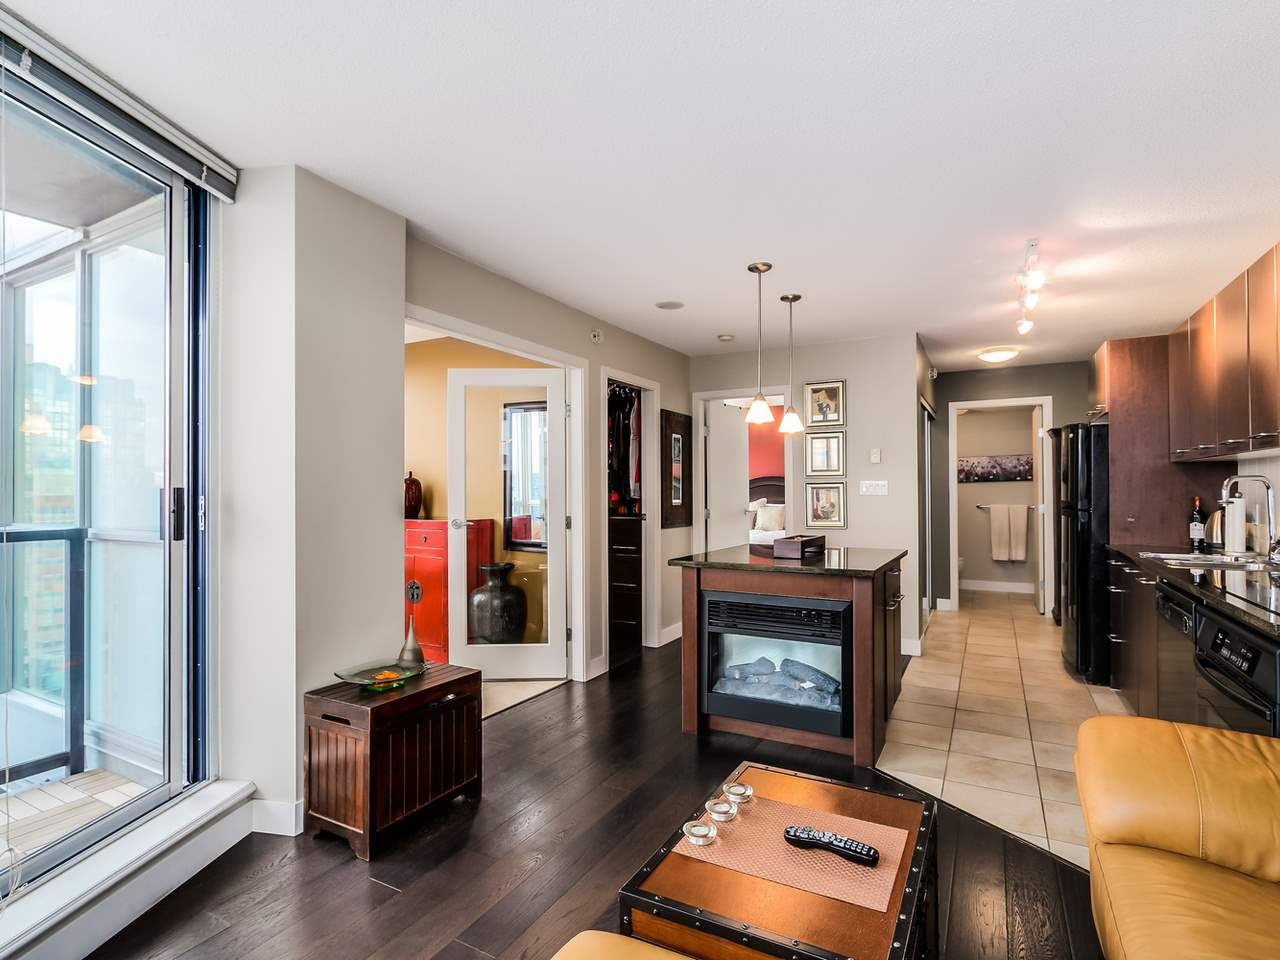 Photo 4: 2308 1155 SEYMOUR STREET in Vancouver: Downtown VW Condo for sale (Vancouver West)  : MLS® # R2026499